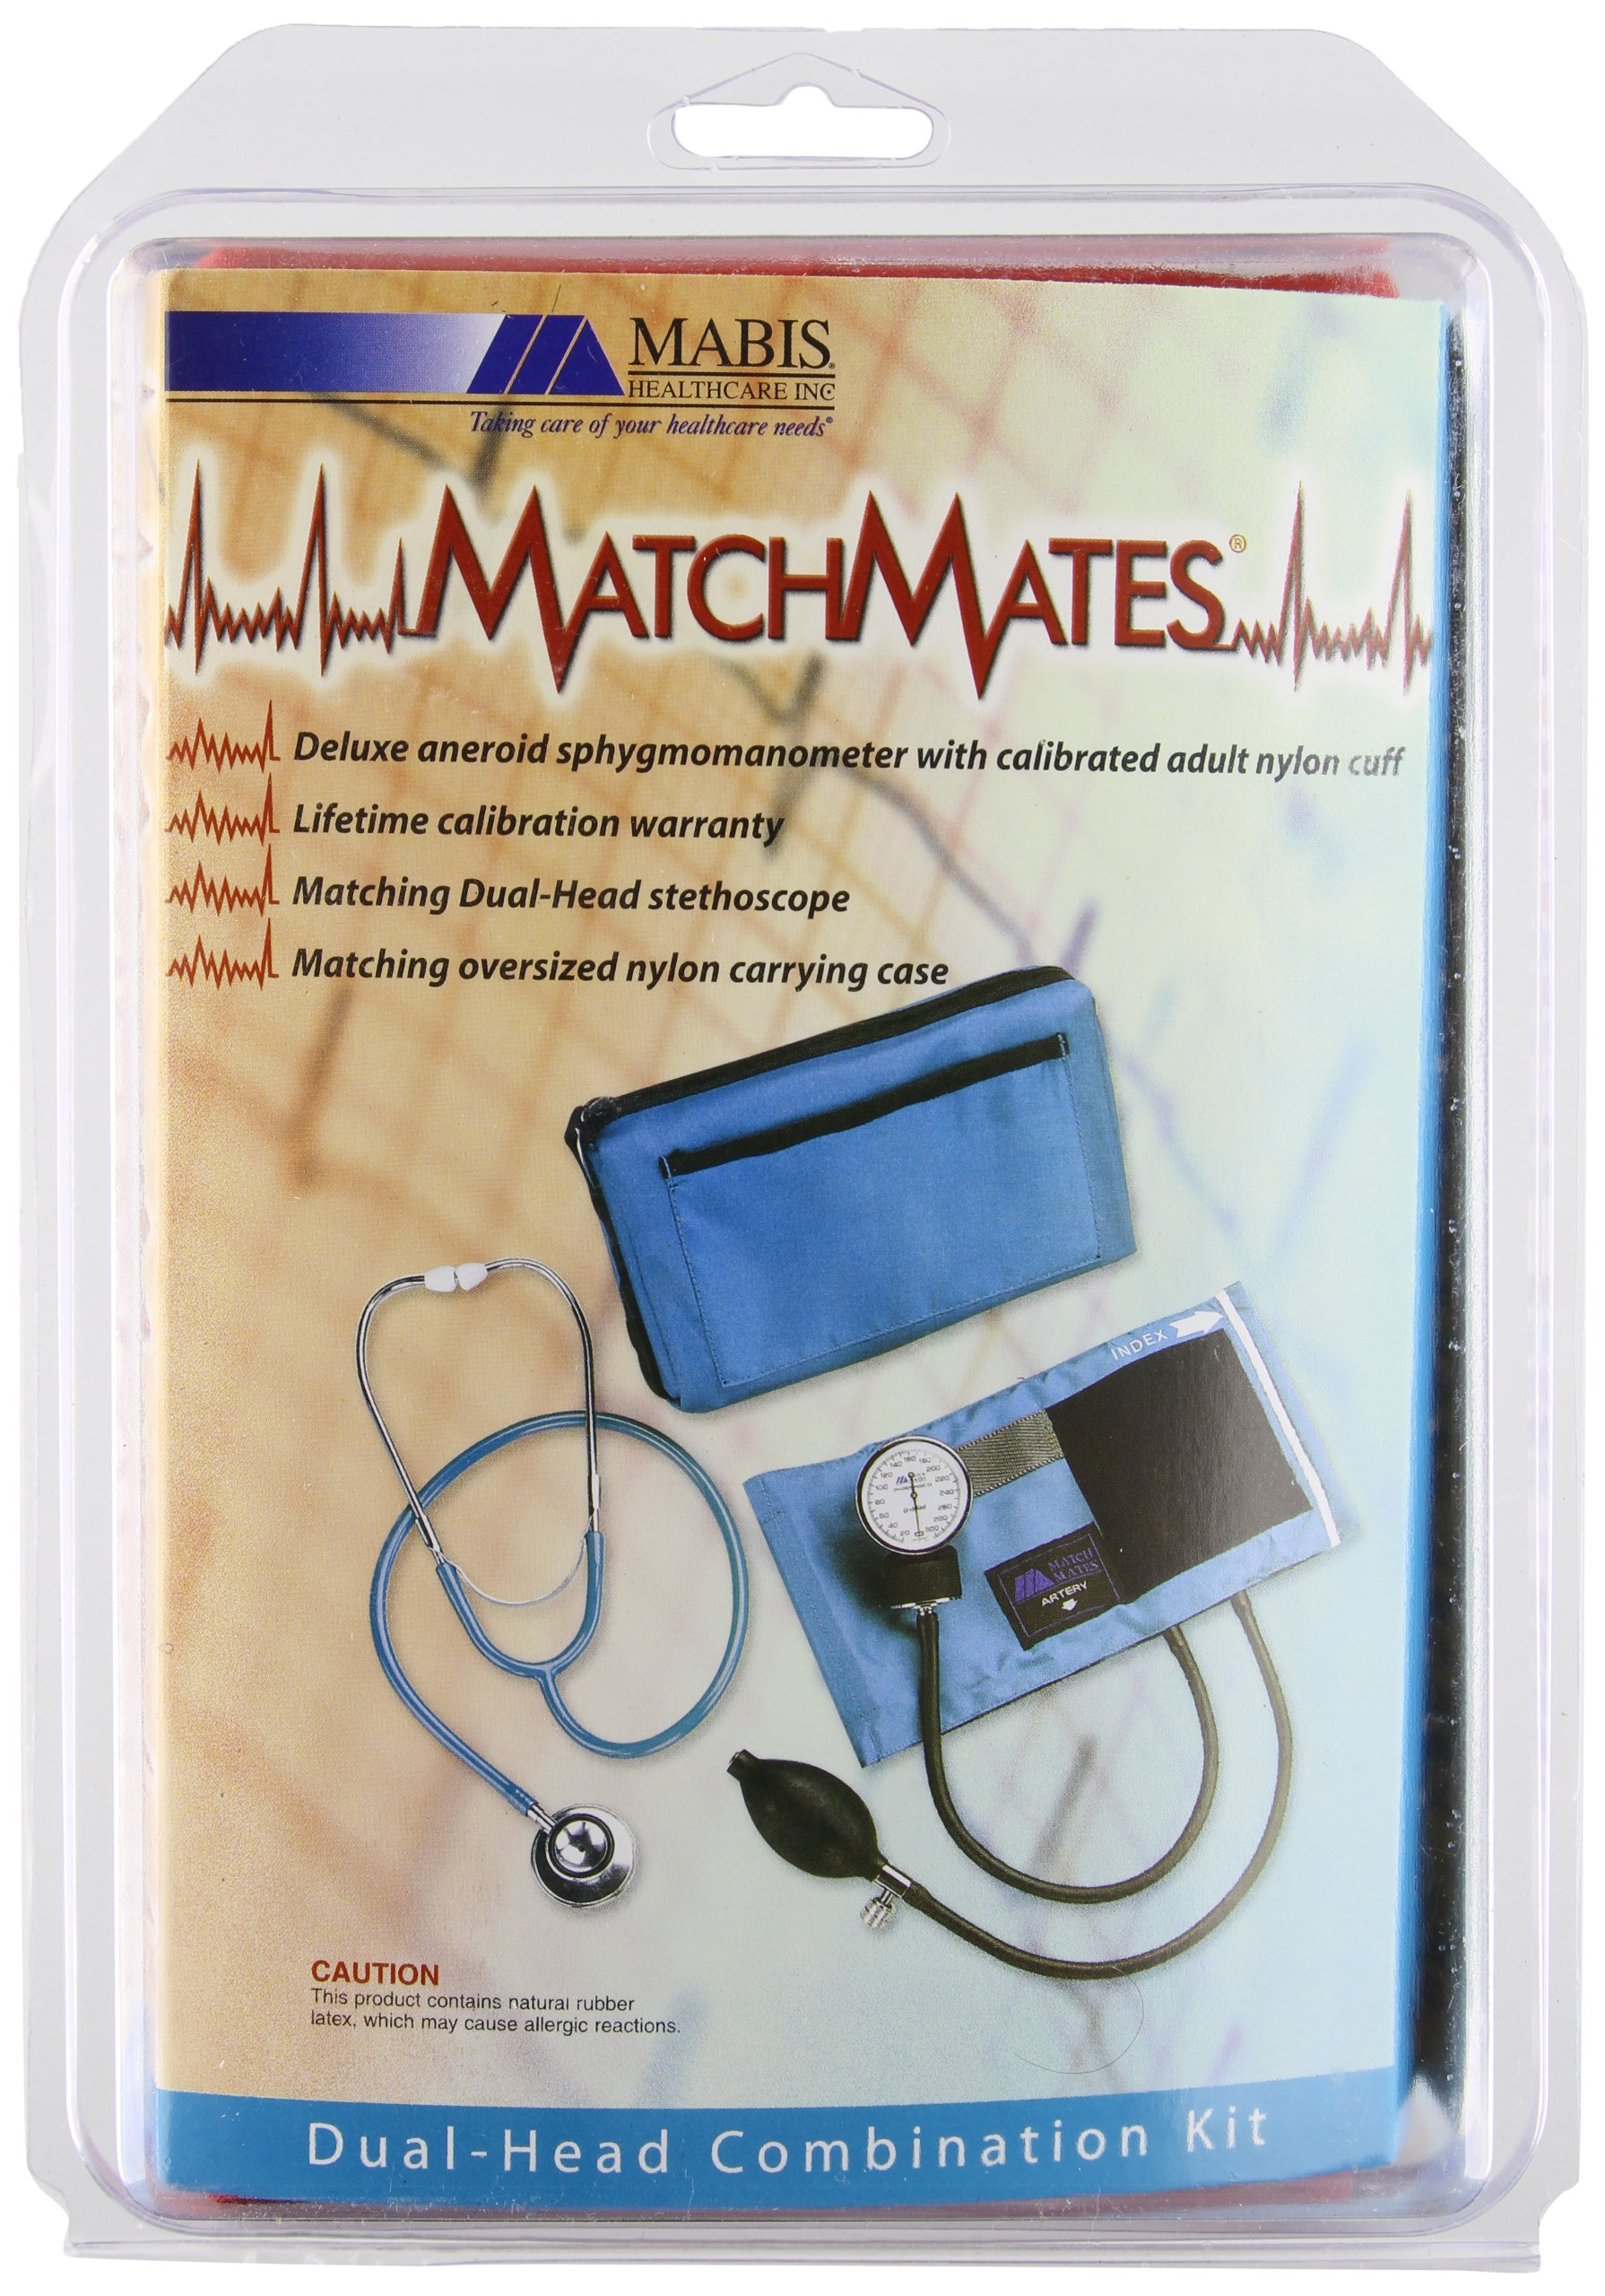 MABIS MatchMates Aneroid Sphygmomanometer and Dual Head Stethoscope Combination Home Blood Pressure Kit with Calibrated Nylon Cuff, Professional Quality, Carrying Case, Red